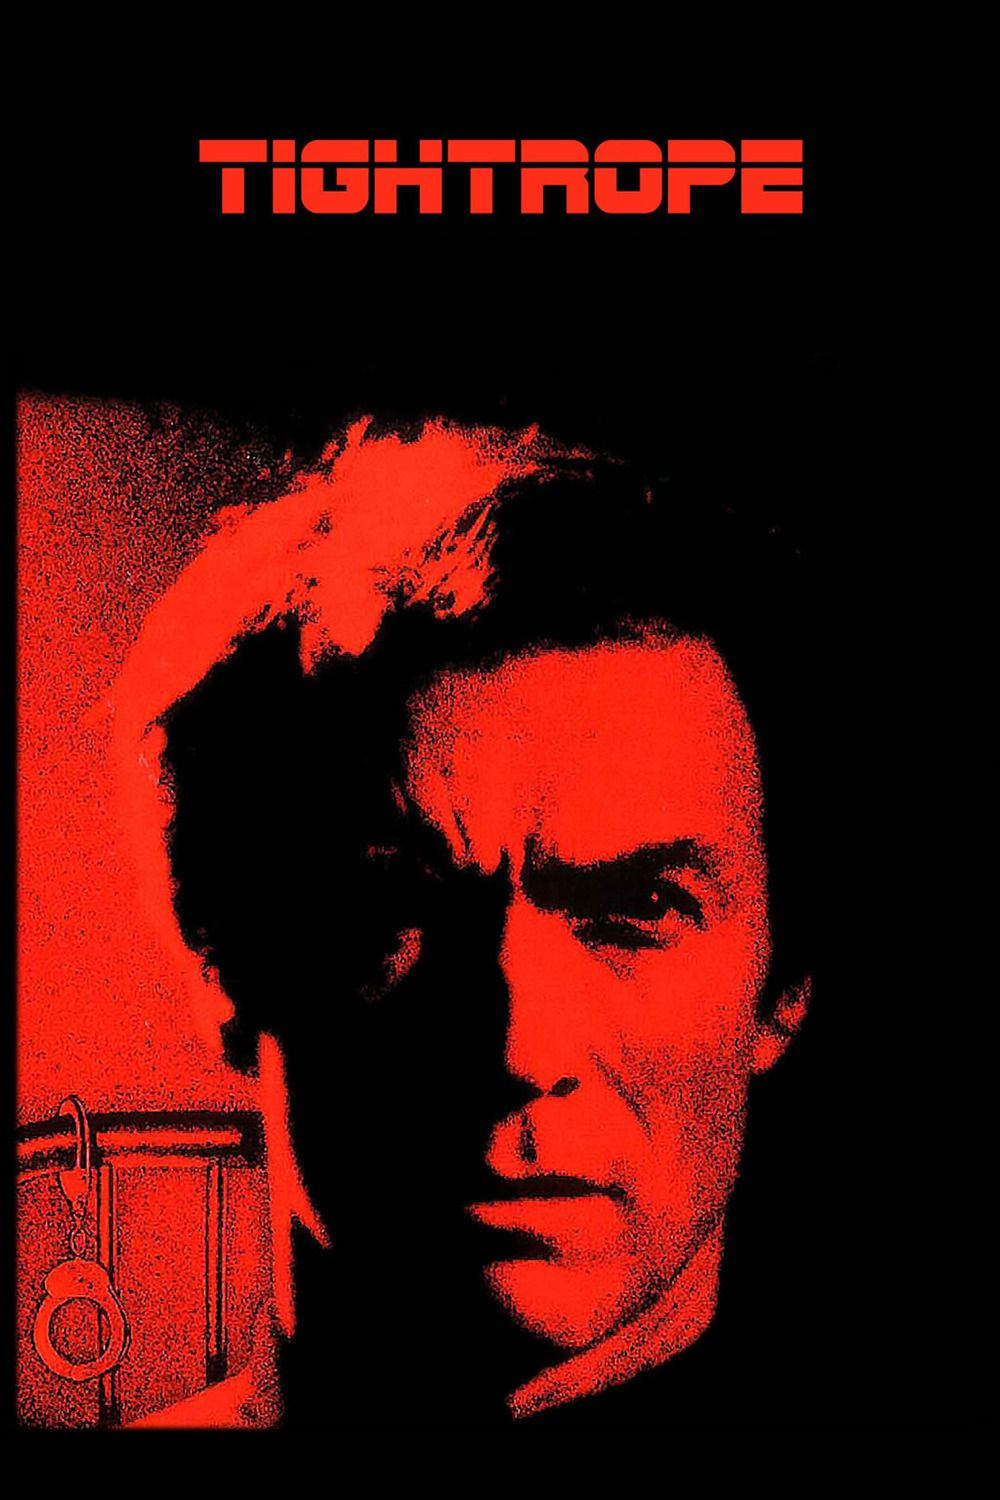 Tightrope 1984 Movies Full Movies Online Free Free Movies Online